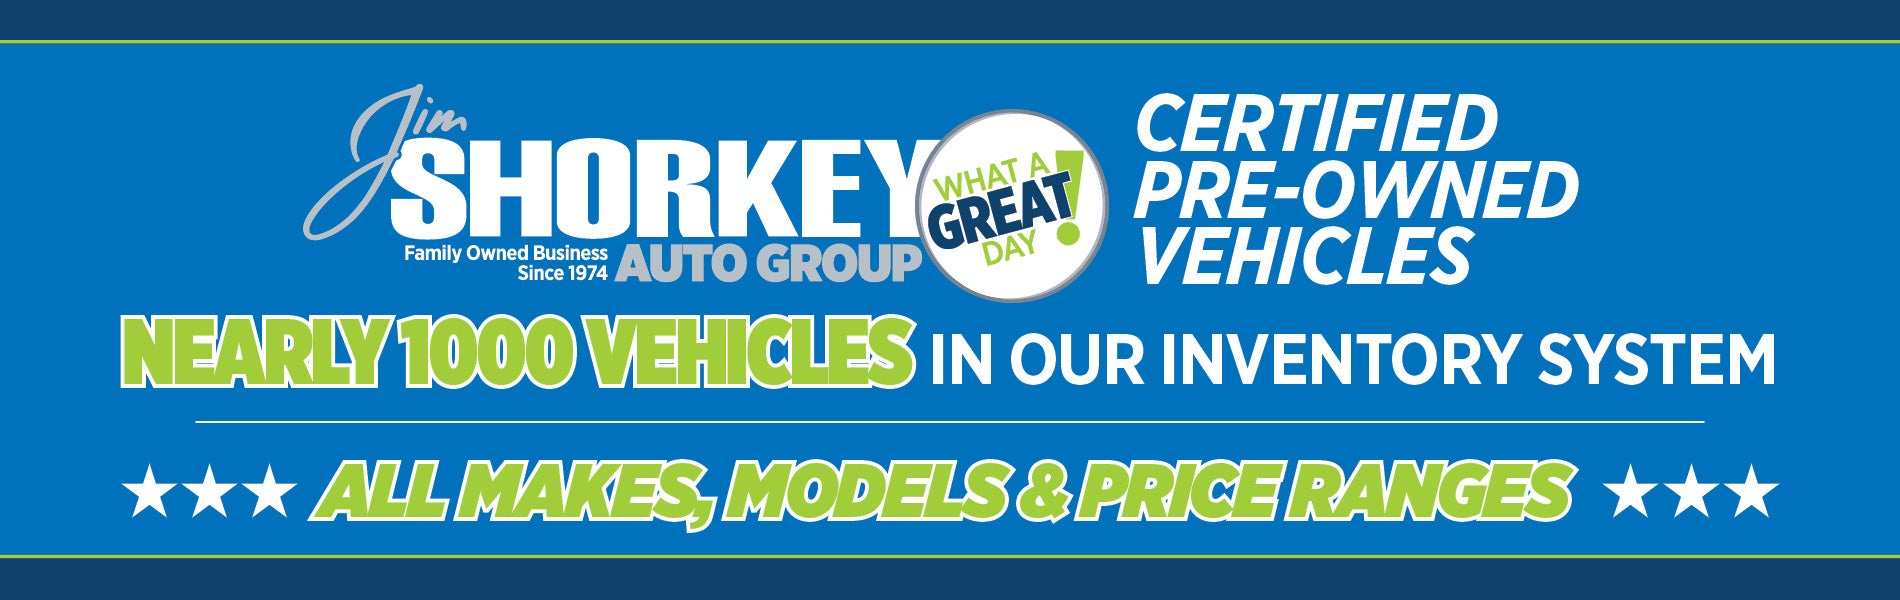 New Ram Sales near Monroeville, PA | Buy or Lease a New ...